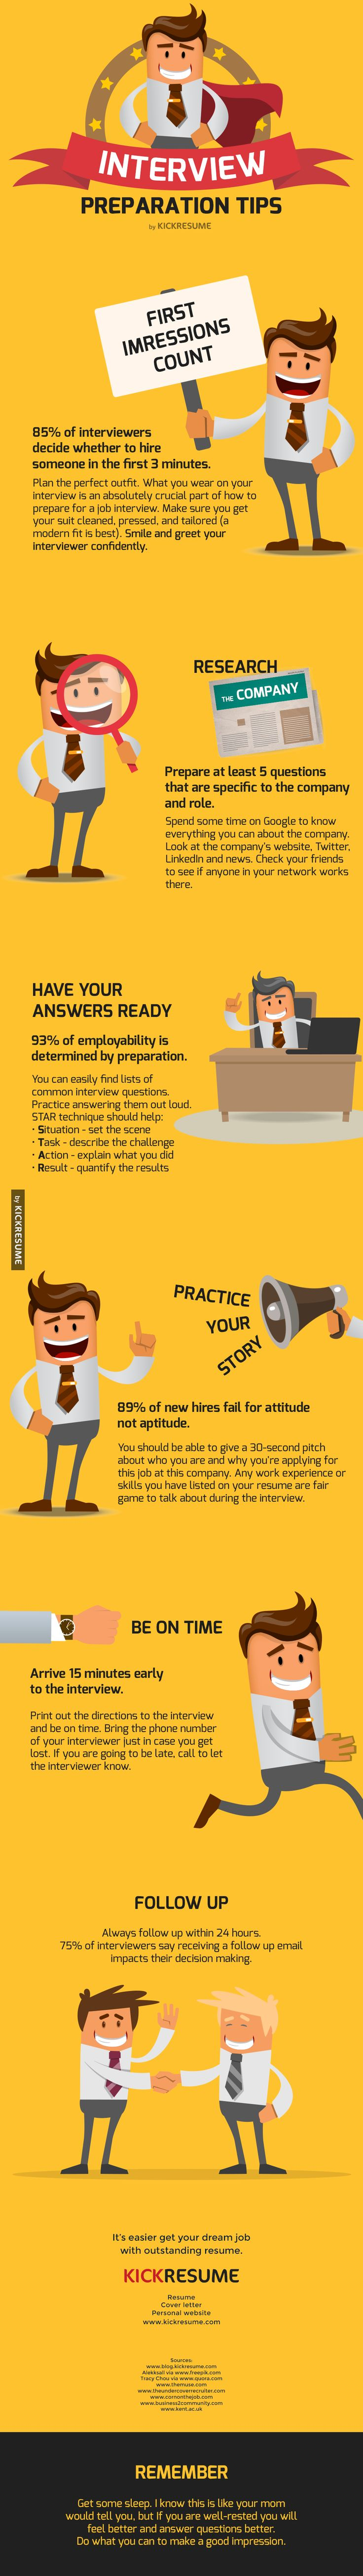 best ideas about job interview preparation job 17 best ideas about job interview preparation job interview tips interview preparation and interview